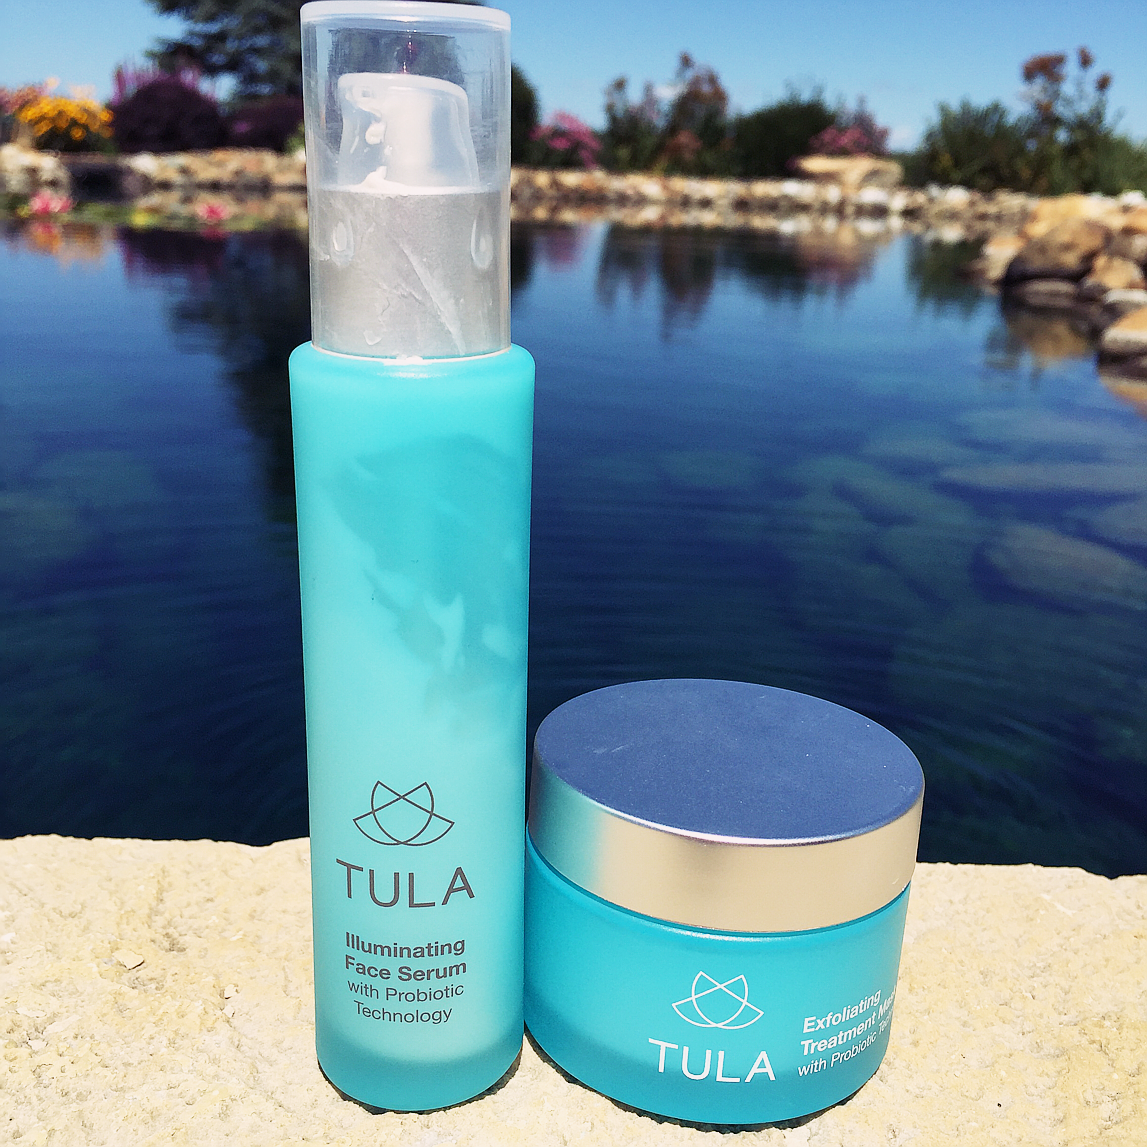 Tula Skin Care Products Review